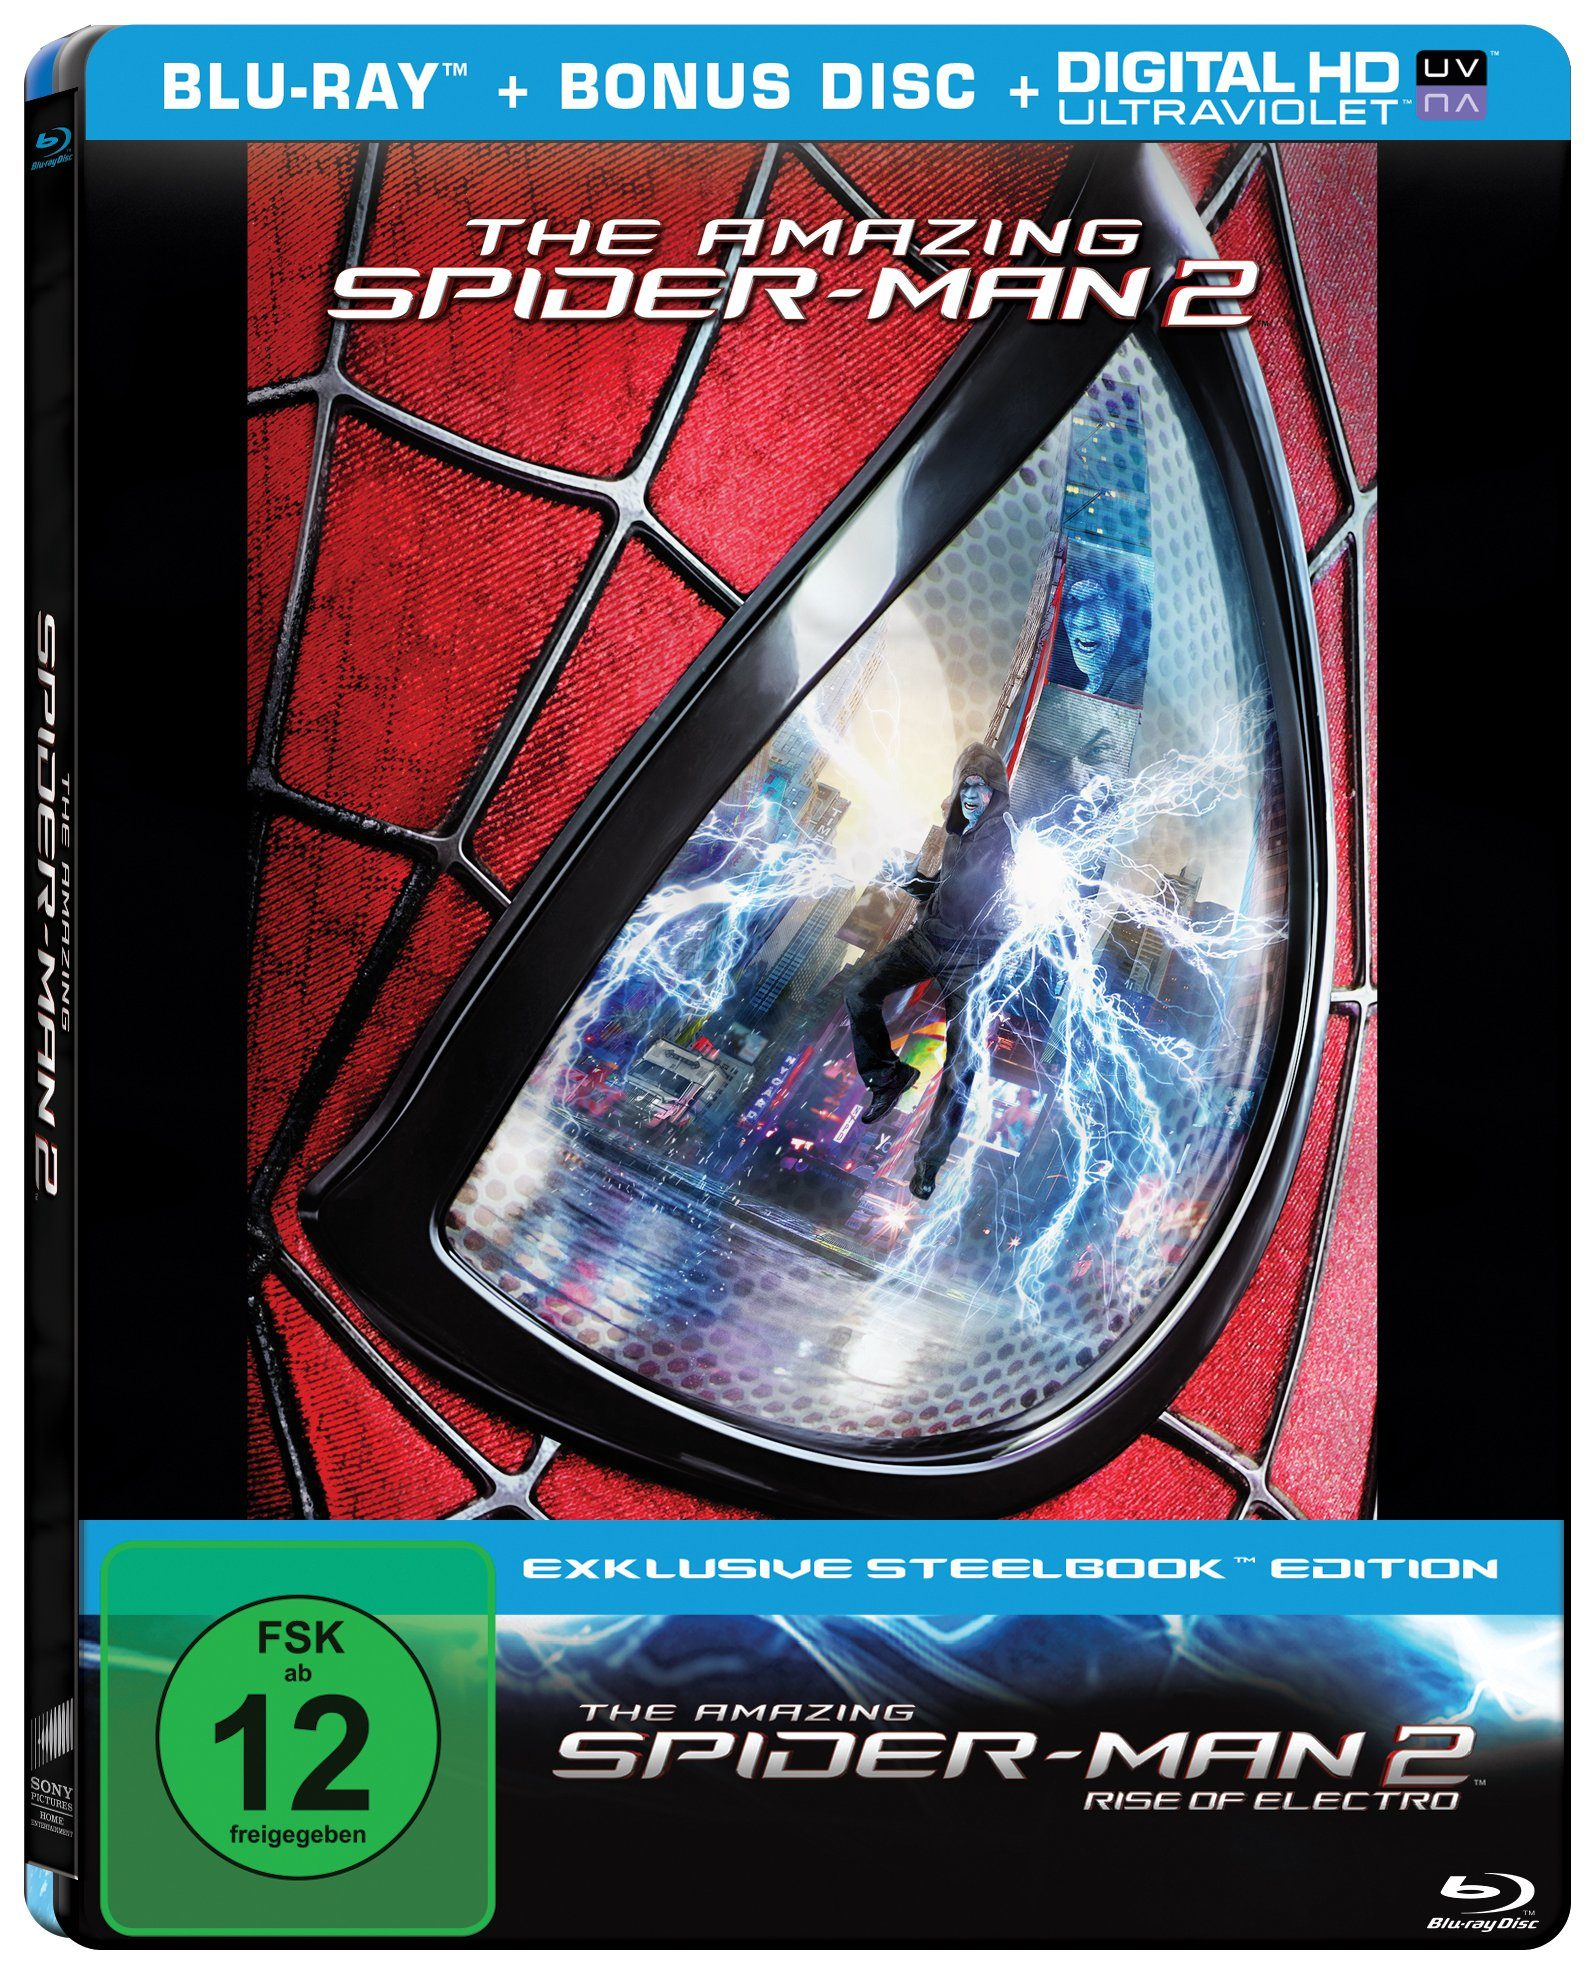 Sony Pictures SteelBook Blu-ray »The Amazing Spider-Man 2™:Rise of Electro«